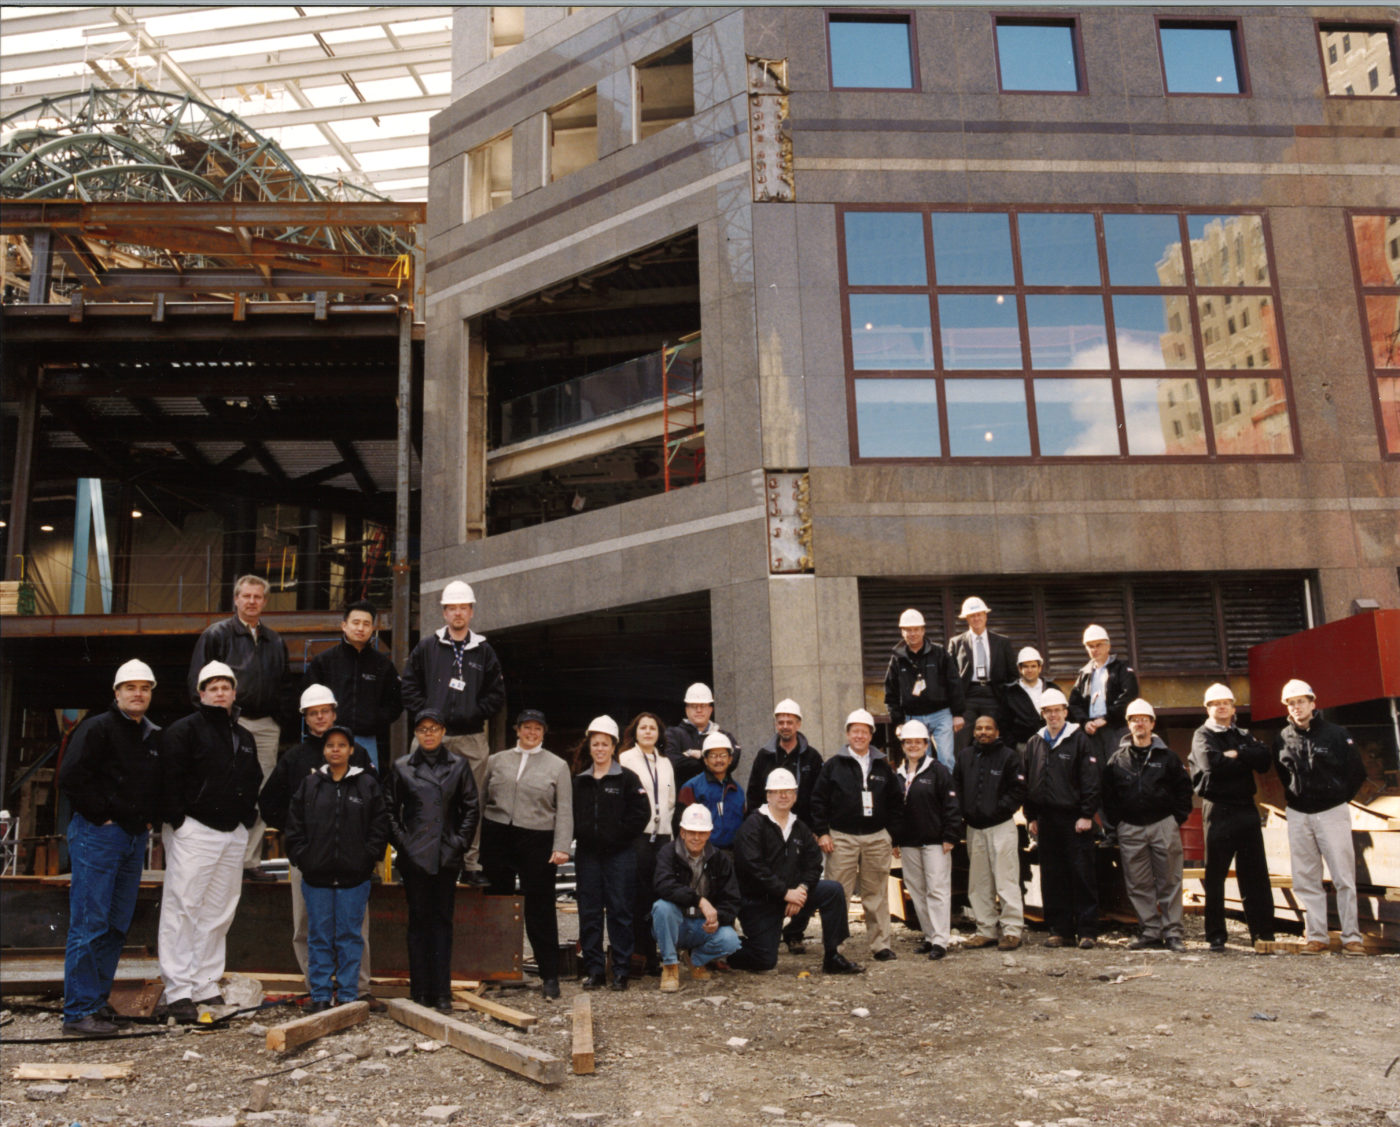 Sonny Deluccy (kneeling) and crew in front of Brookfield Place one year later